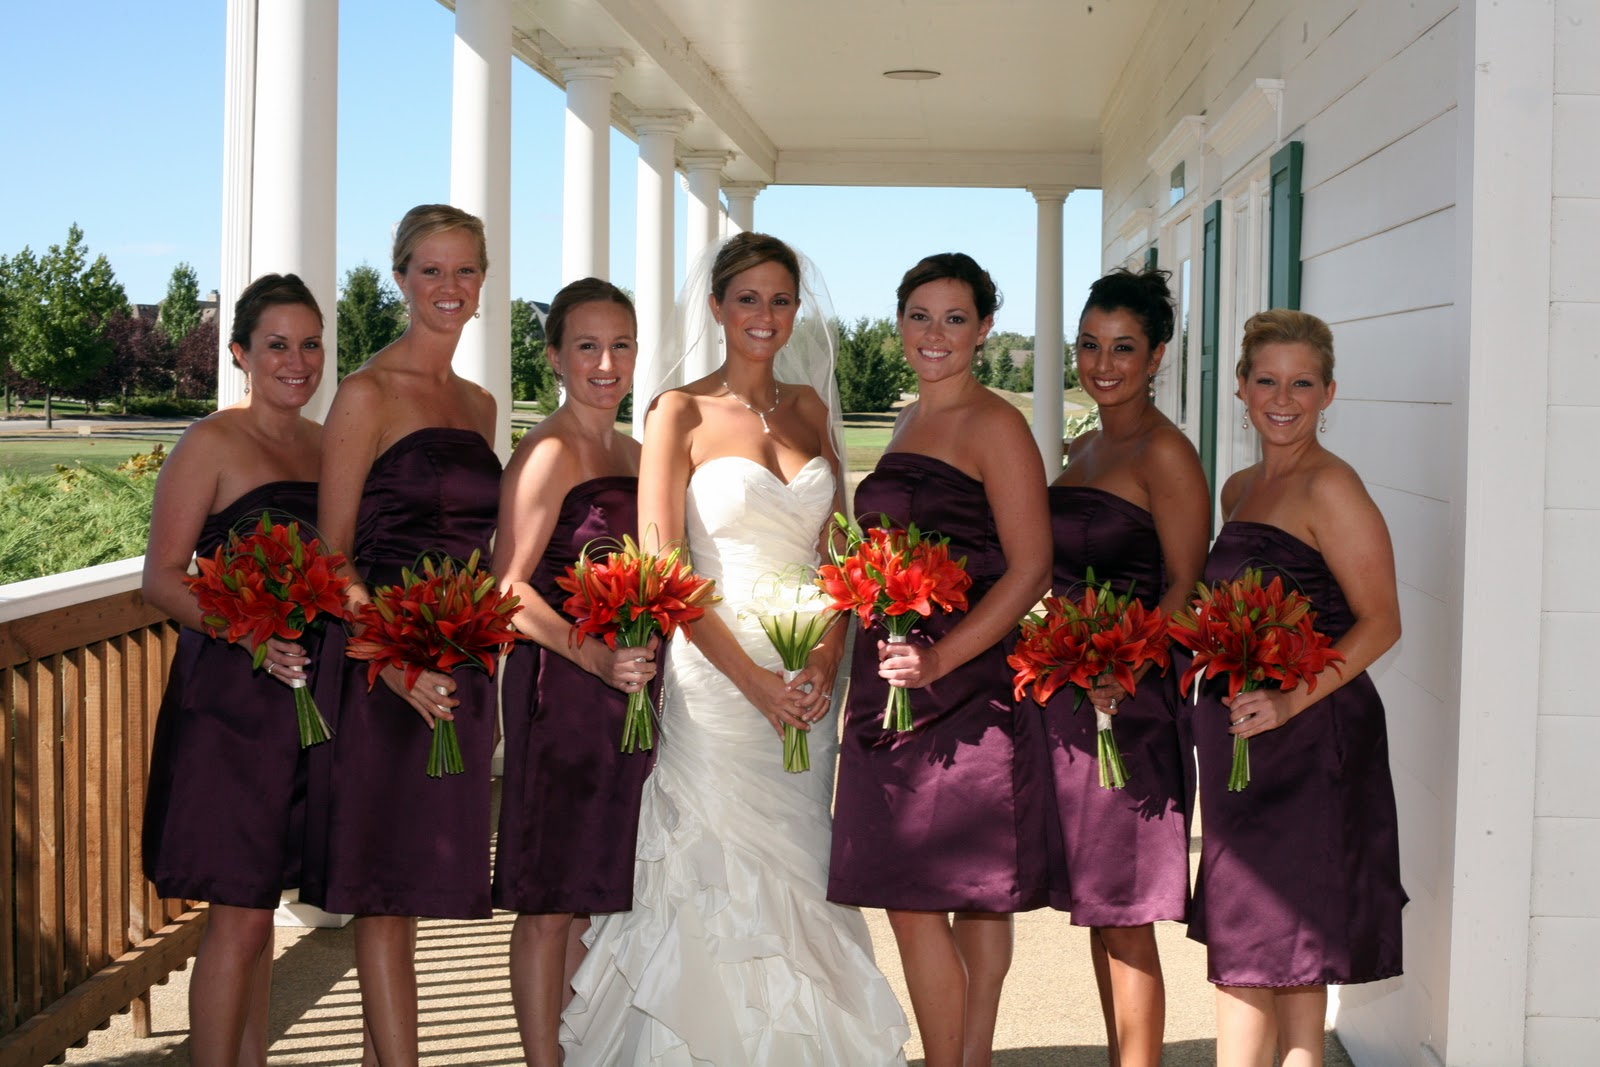 Love the orange bouquets!